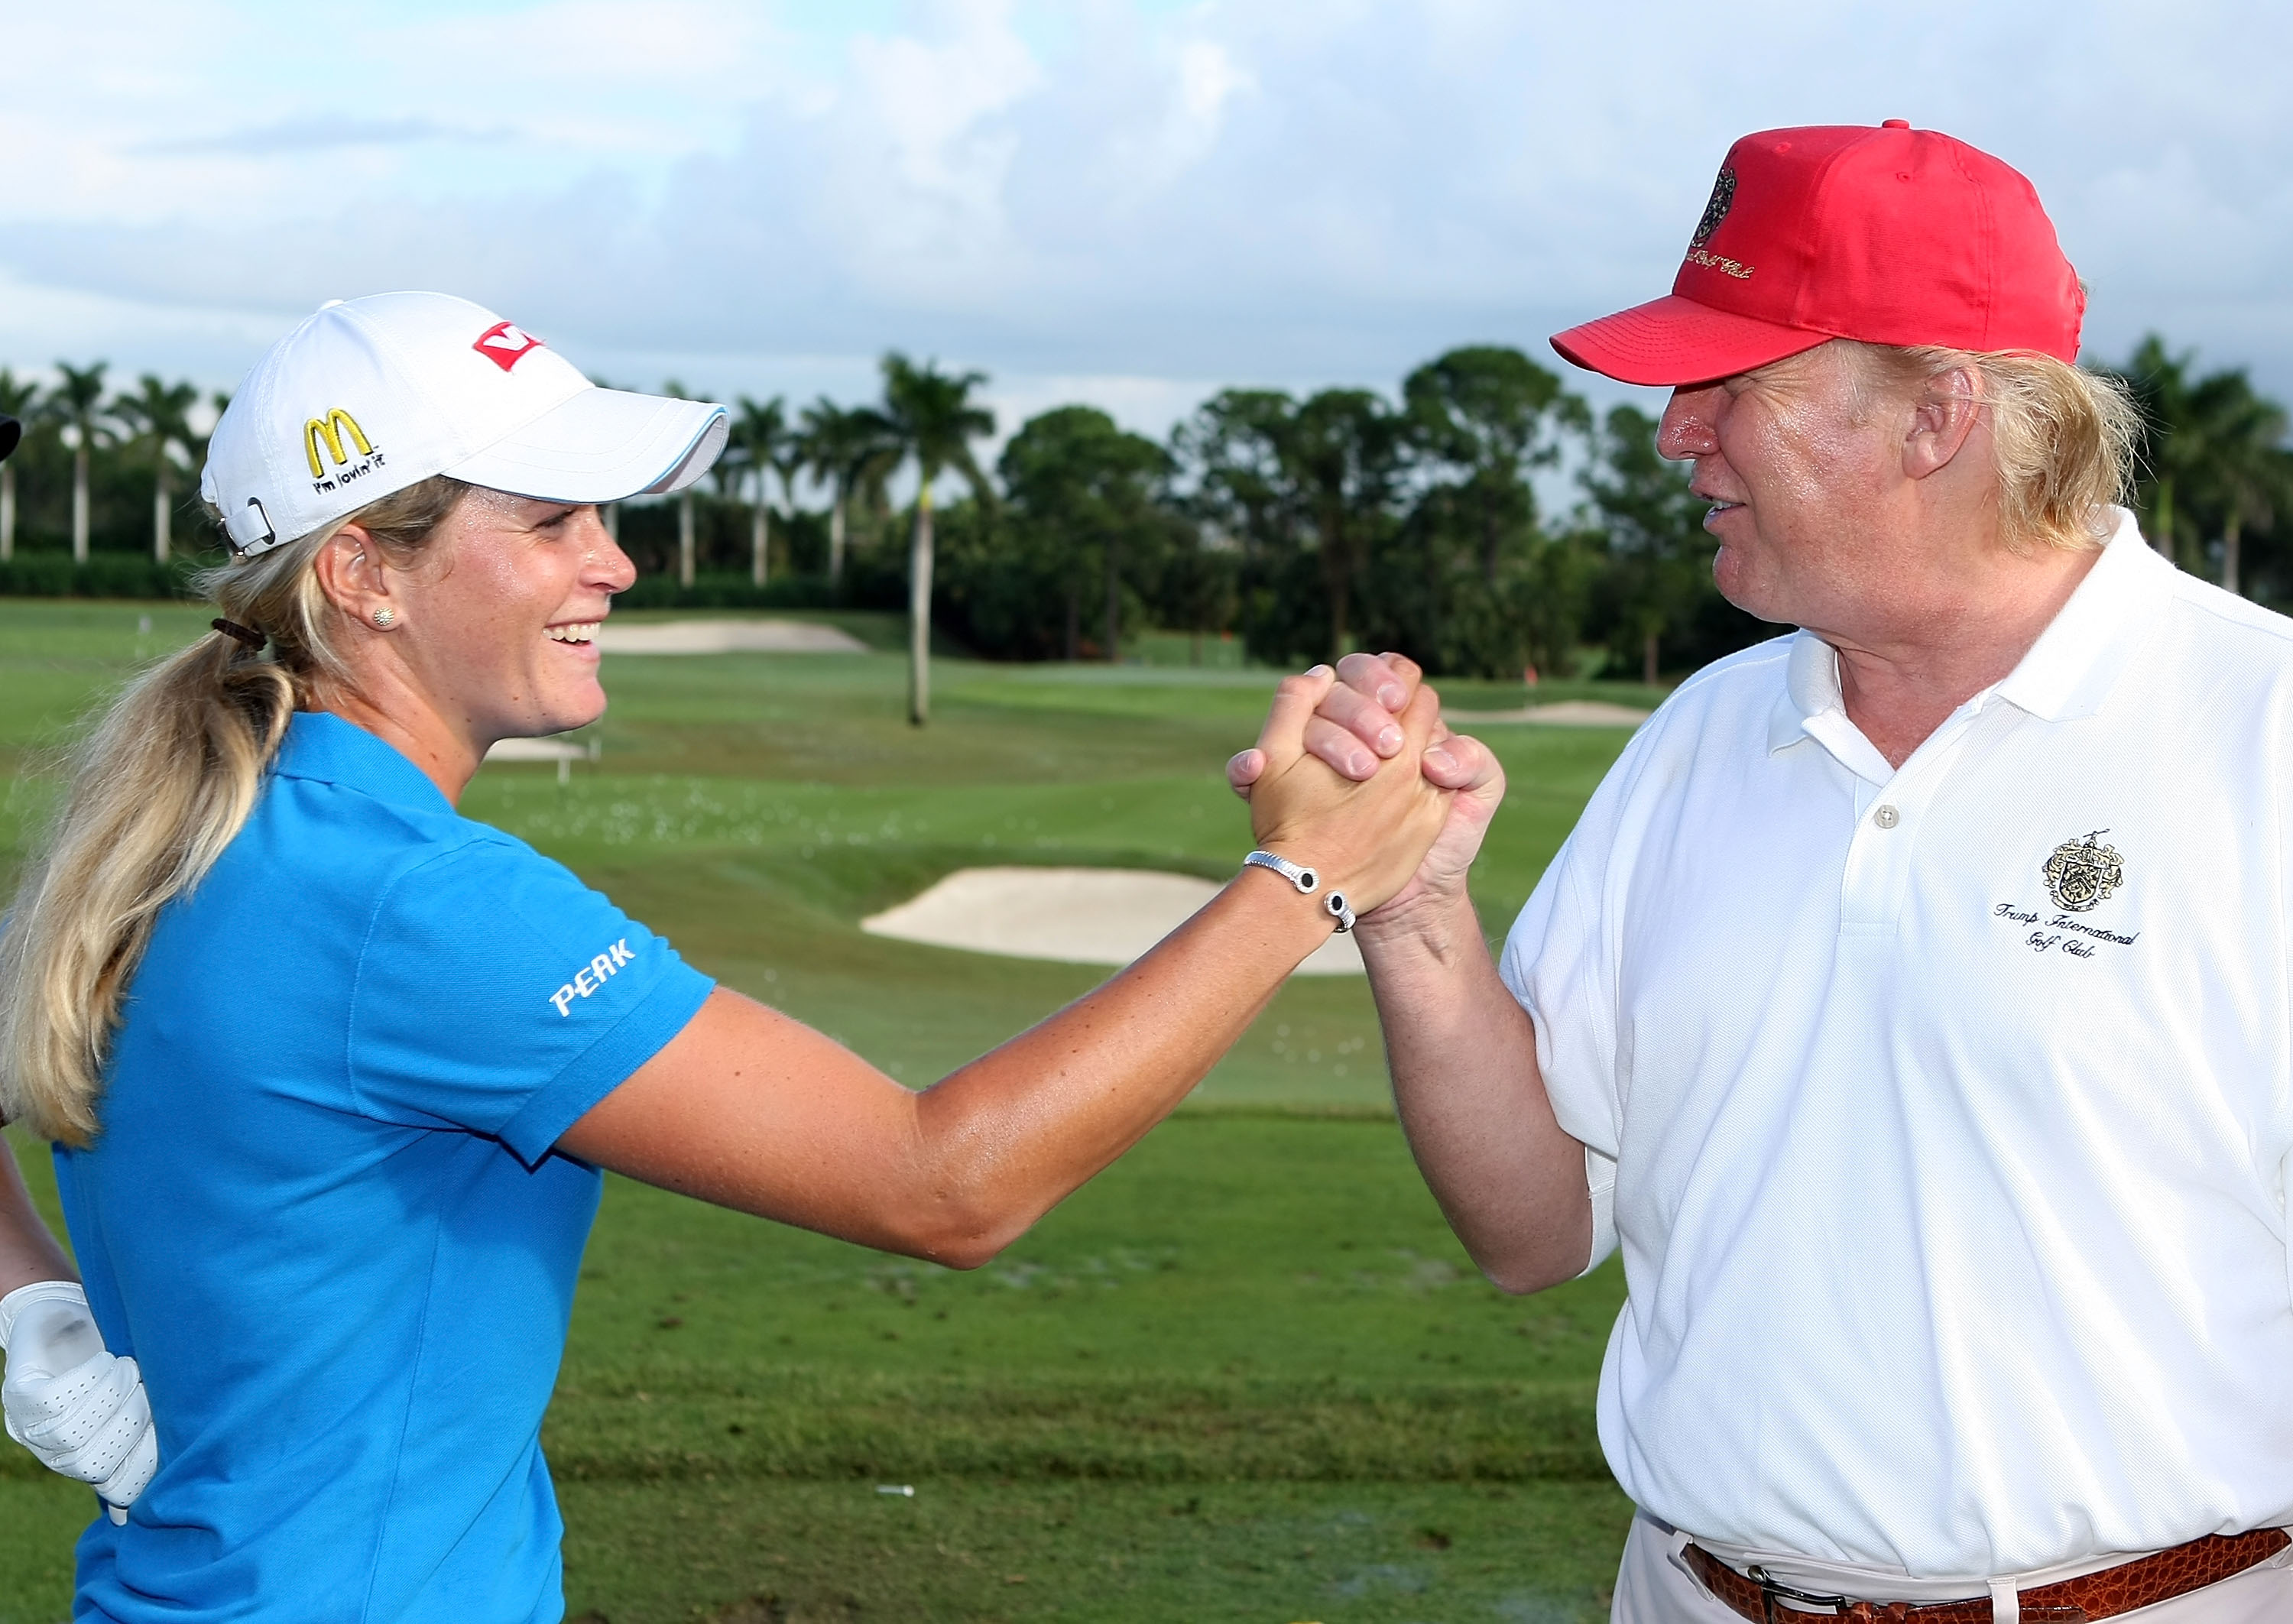 LPGA star Suzann Pettersen on Trump: 'I've learned lots from him'